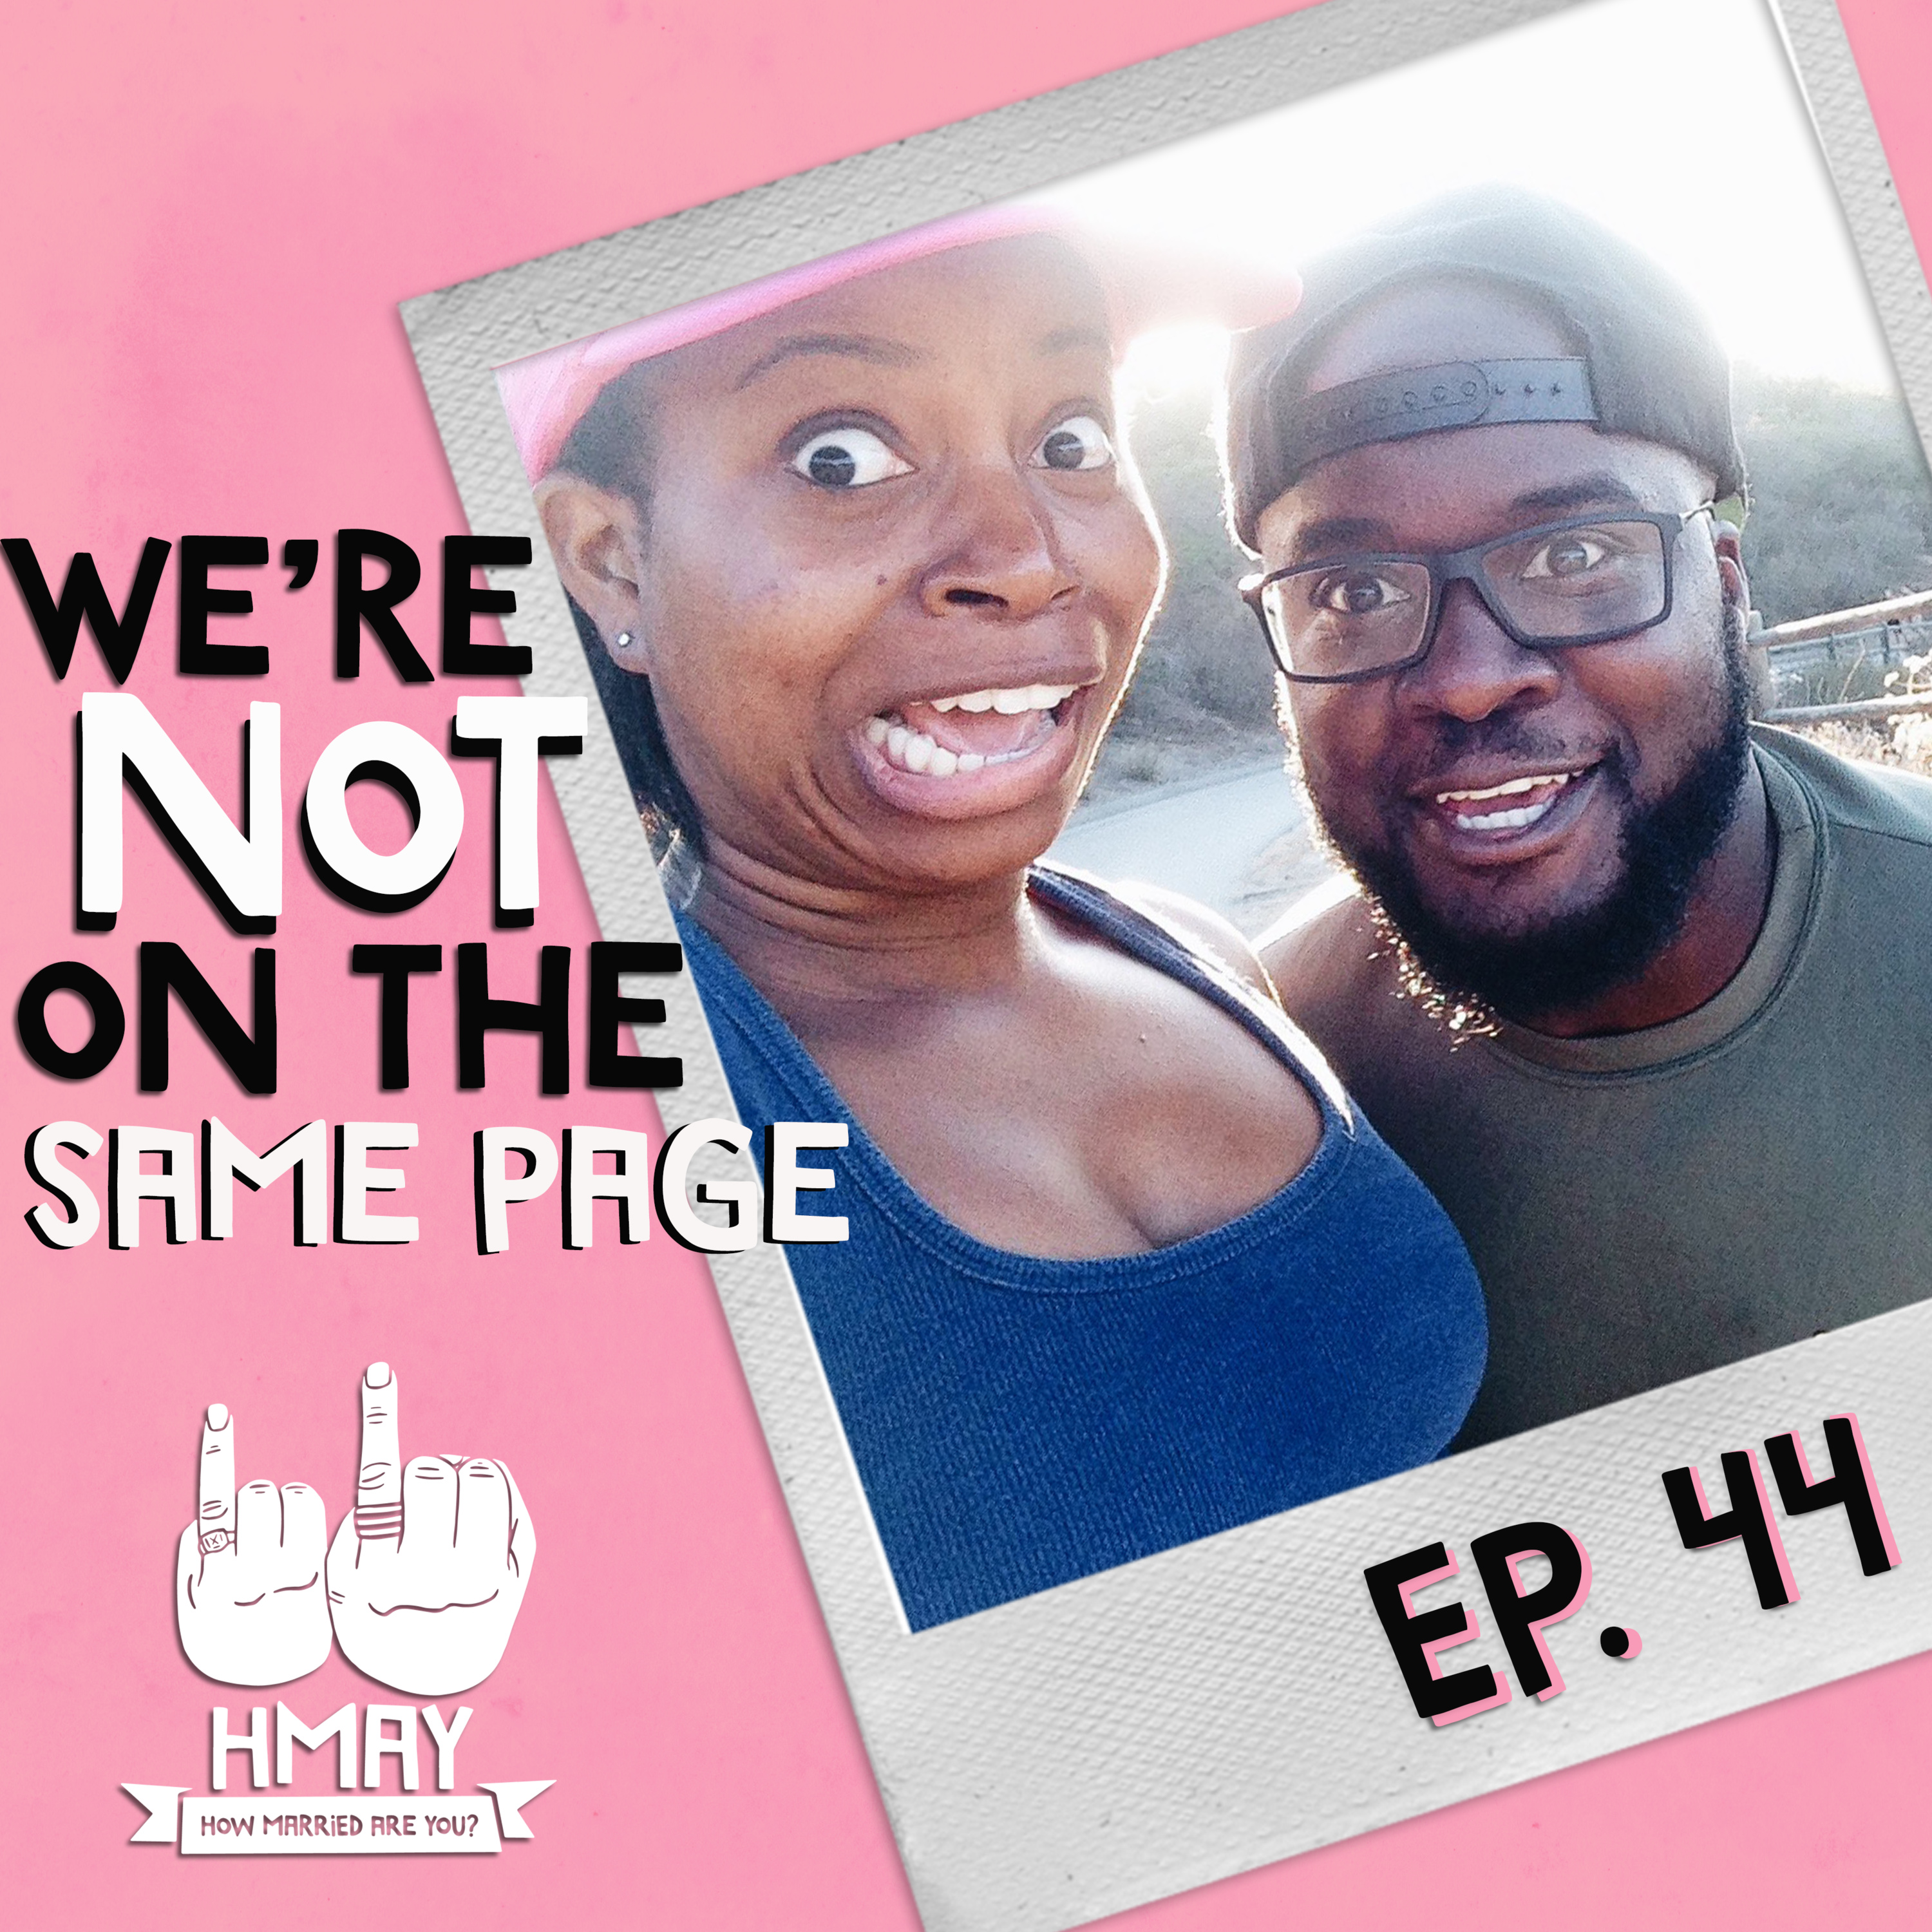 HMAY?! 044| We're Not on the Same Page